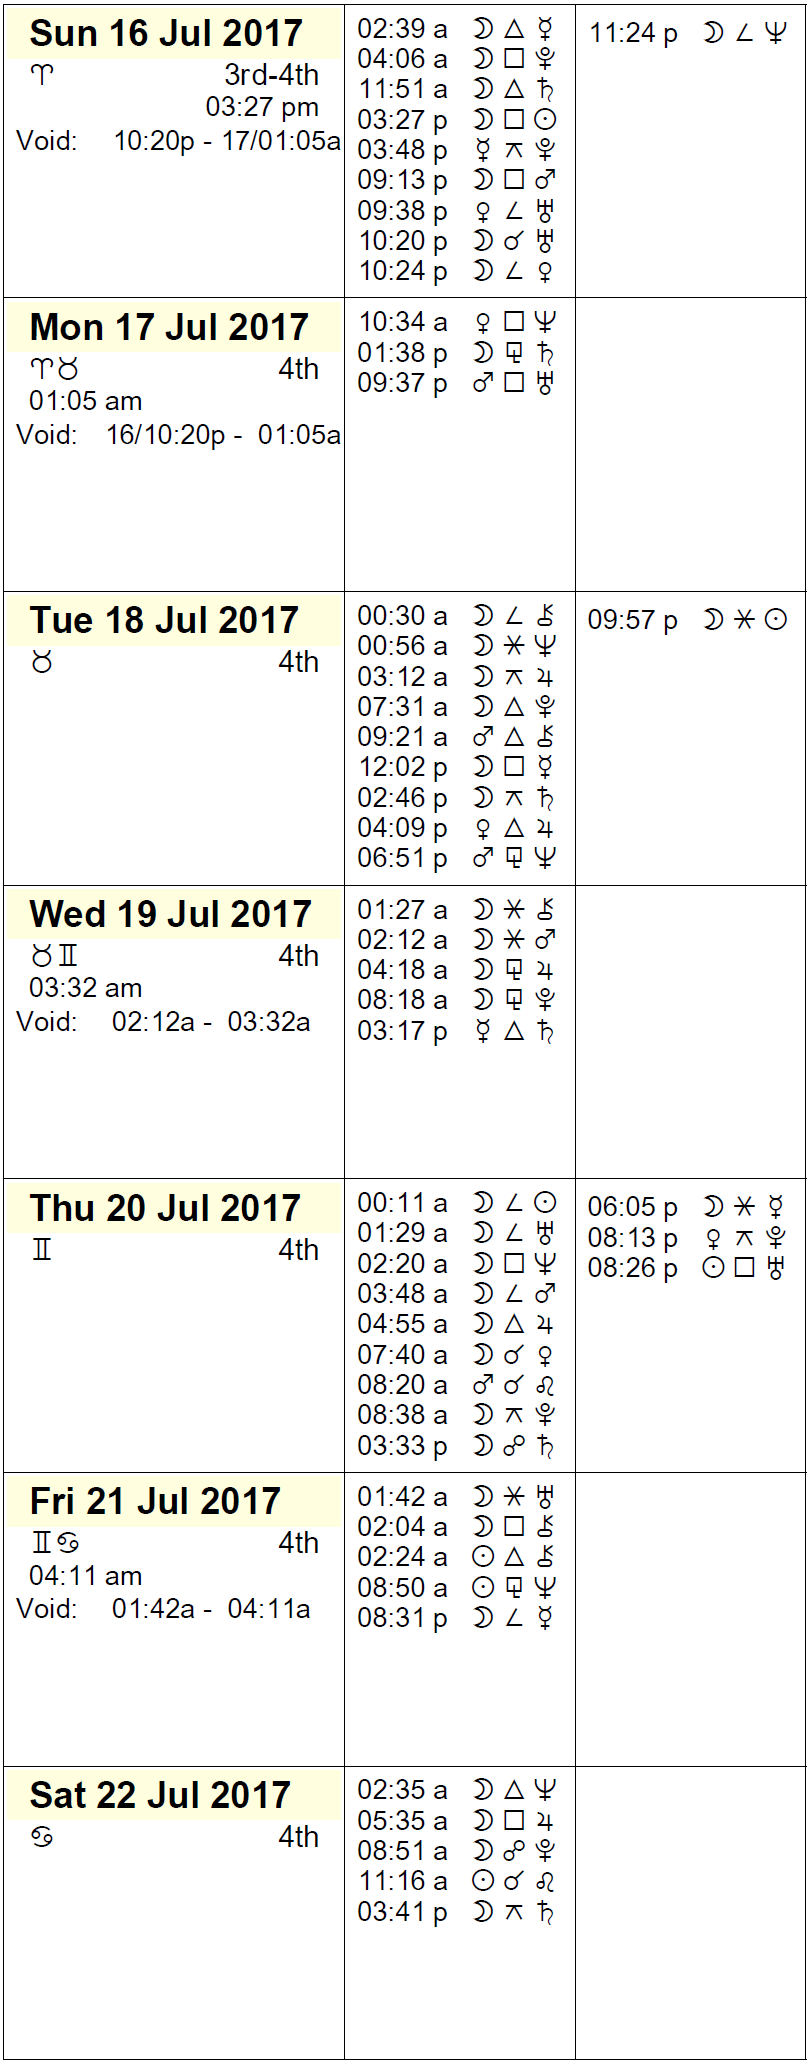 This Week in Astrology - July 16 to 22, 2017